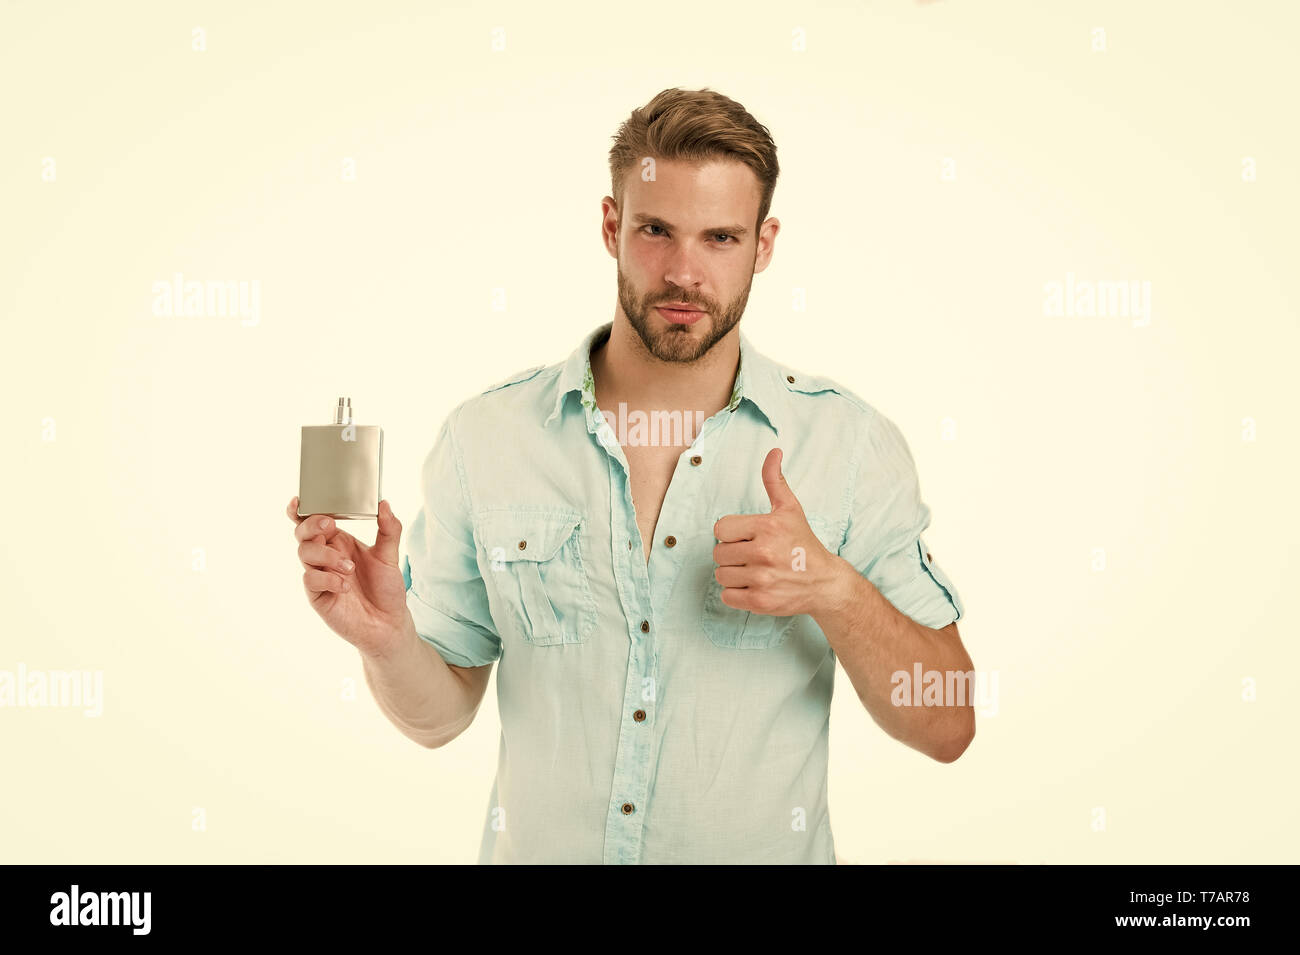 Man confident face recommend perfume shows thumb up gesture. Guy with bristle bottle perfume he likes this fragrance. Male fragrance concept. Man handsome recommend pleasant aroma for male. - Stock Image